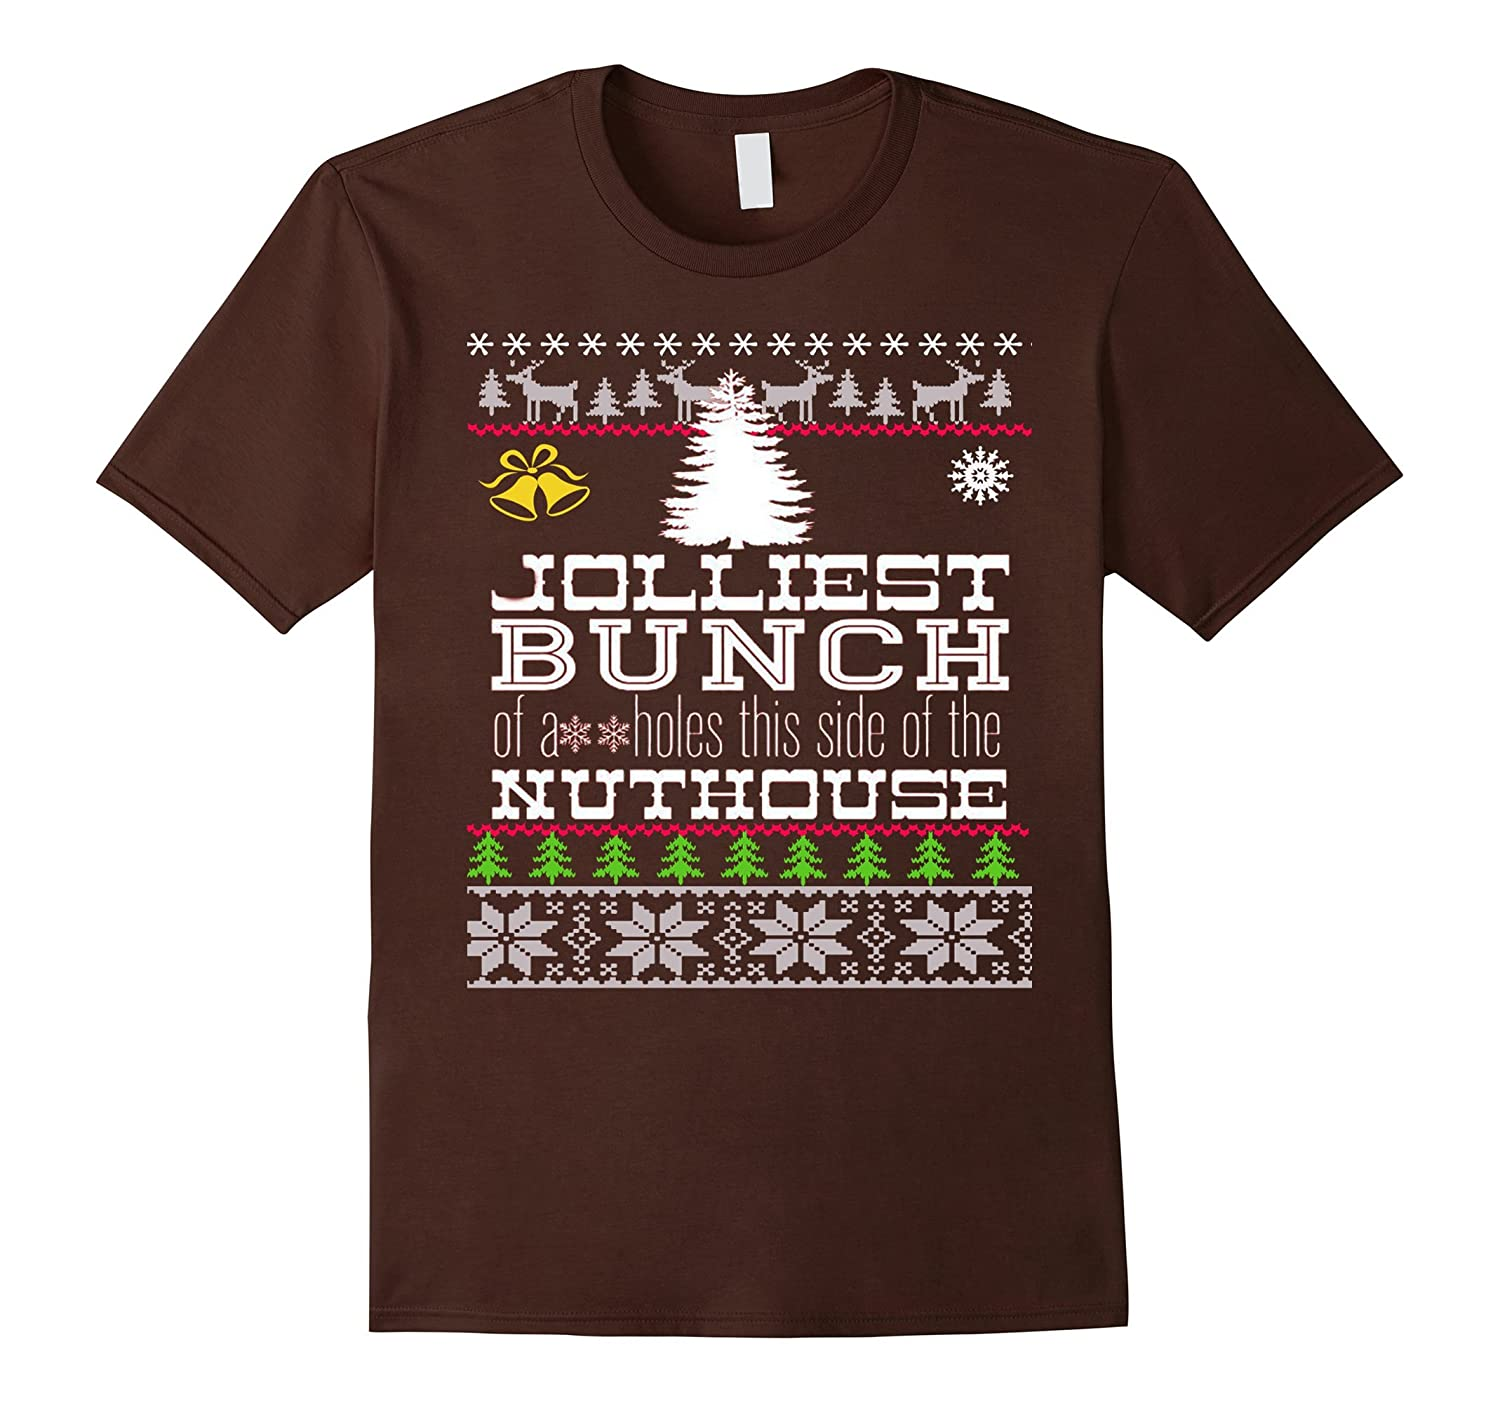 Christmas Vacation Quotes Jolliest Bunch Of: Jolliest Bunch Christmas Vacation Shirt